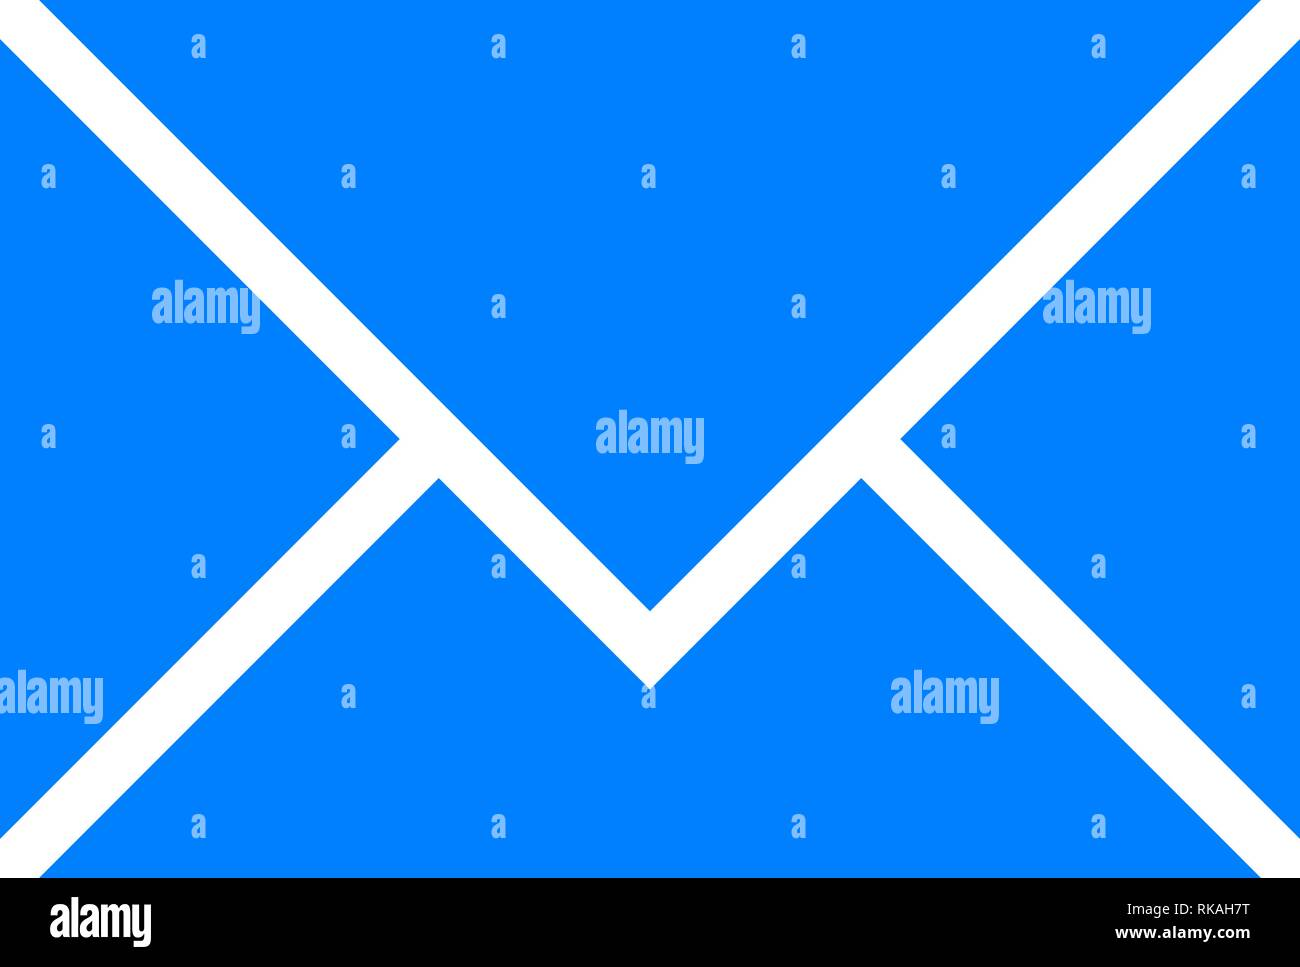 Mail symbol icon - blue simple, isolated - vector illustration - Stock Image